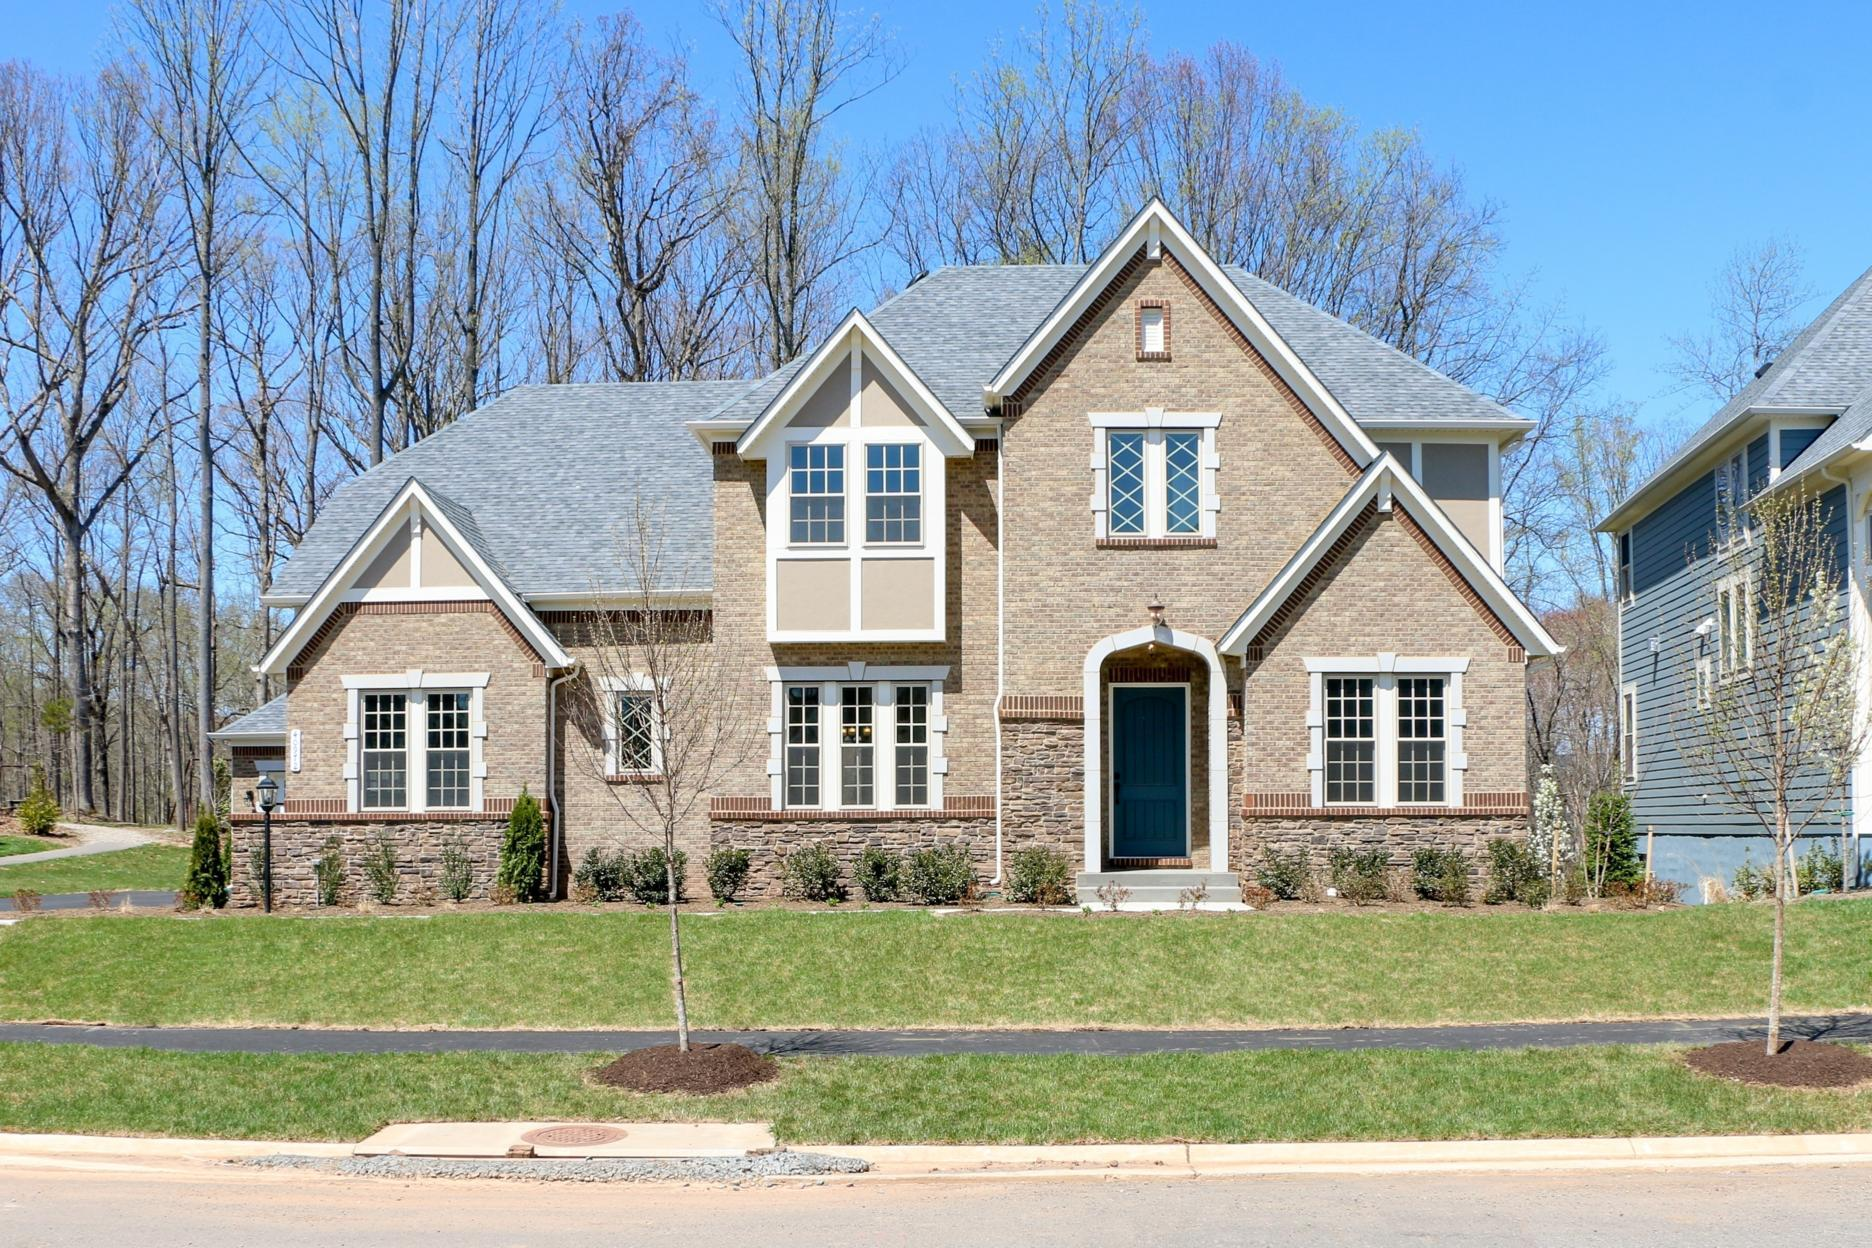 Single Family for Active at Oakton 40972 Blossom Glade Drive Aldie, Virginia 20105 United States